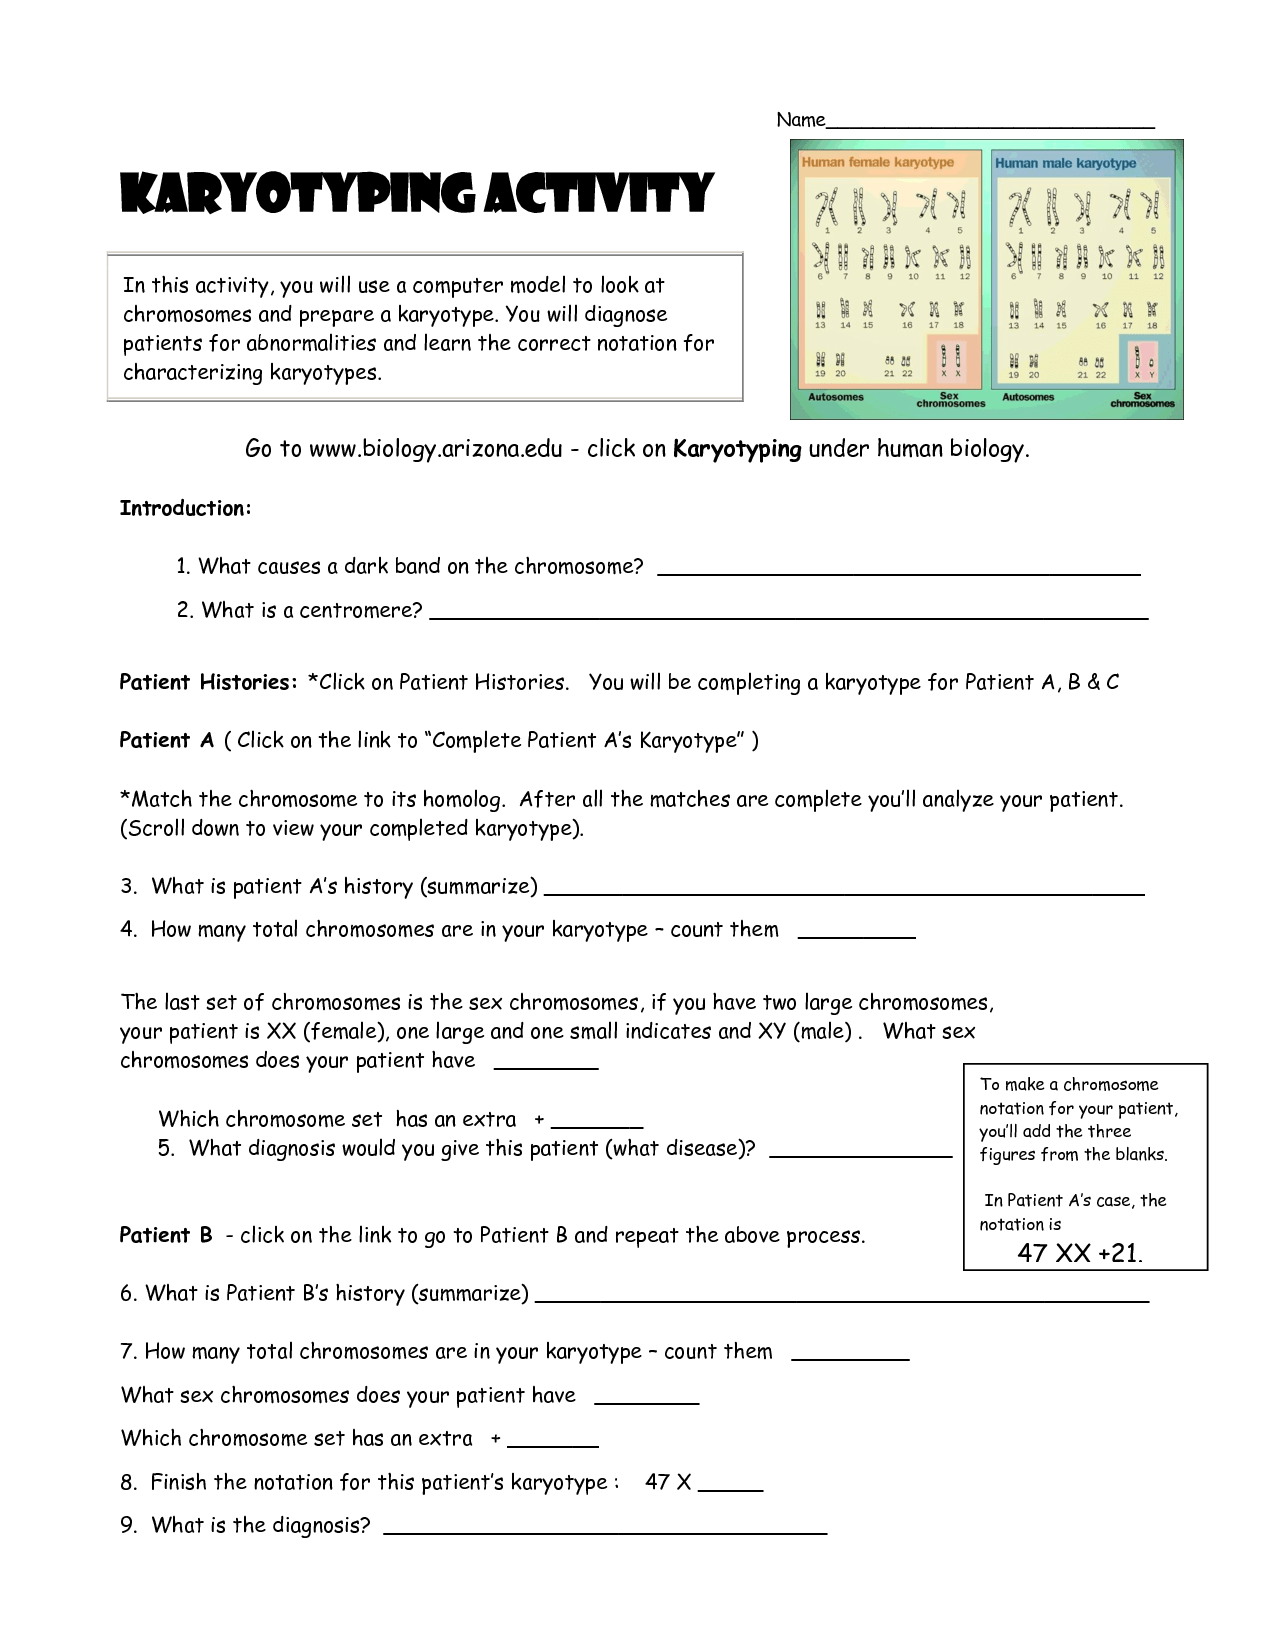 Karyotyping Activity Doc